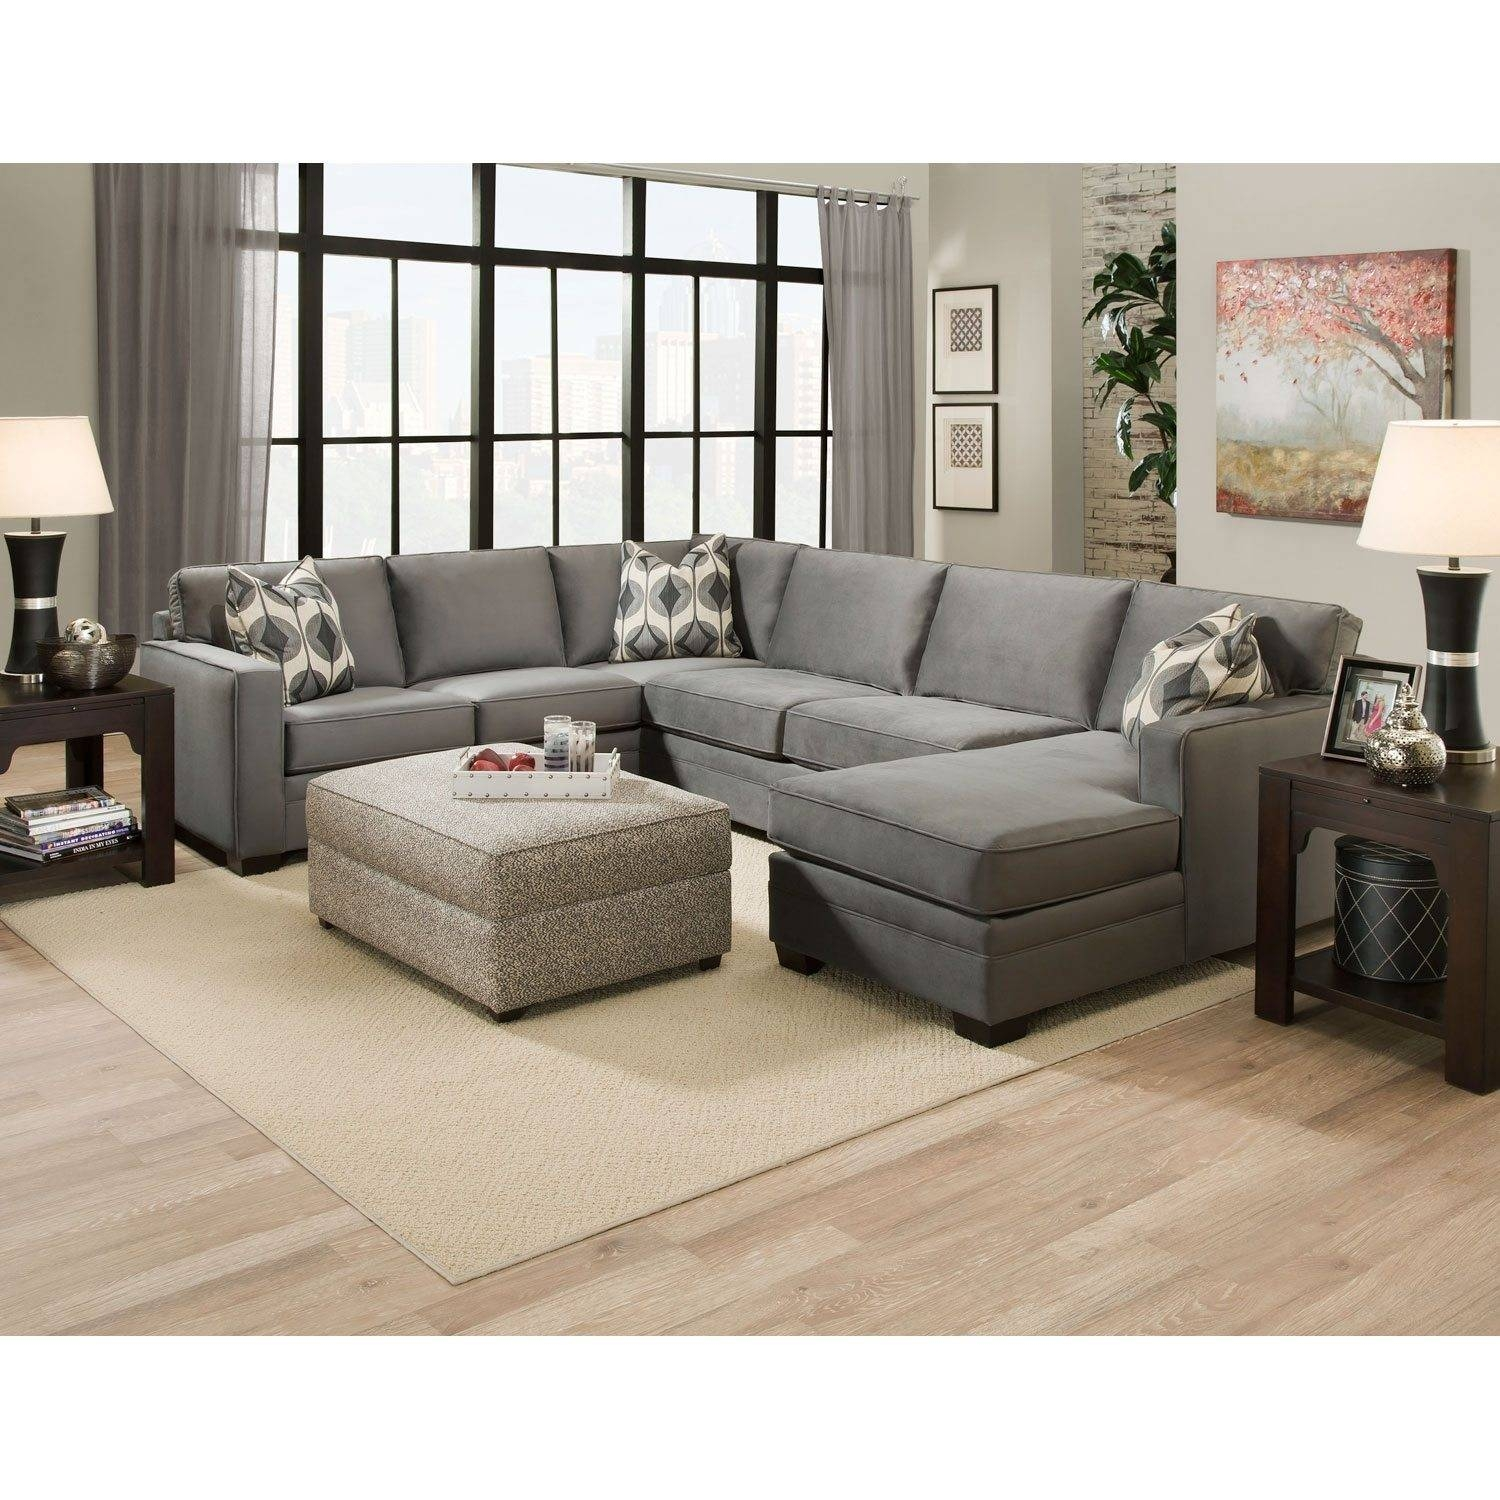 Furniture: Exciting Sectional Sofas Costco For Your Family Room in Extra Wide Sectional Sofas (Image 19 of 30)